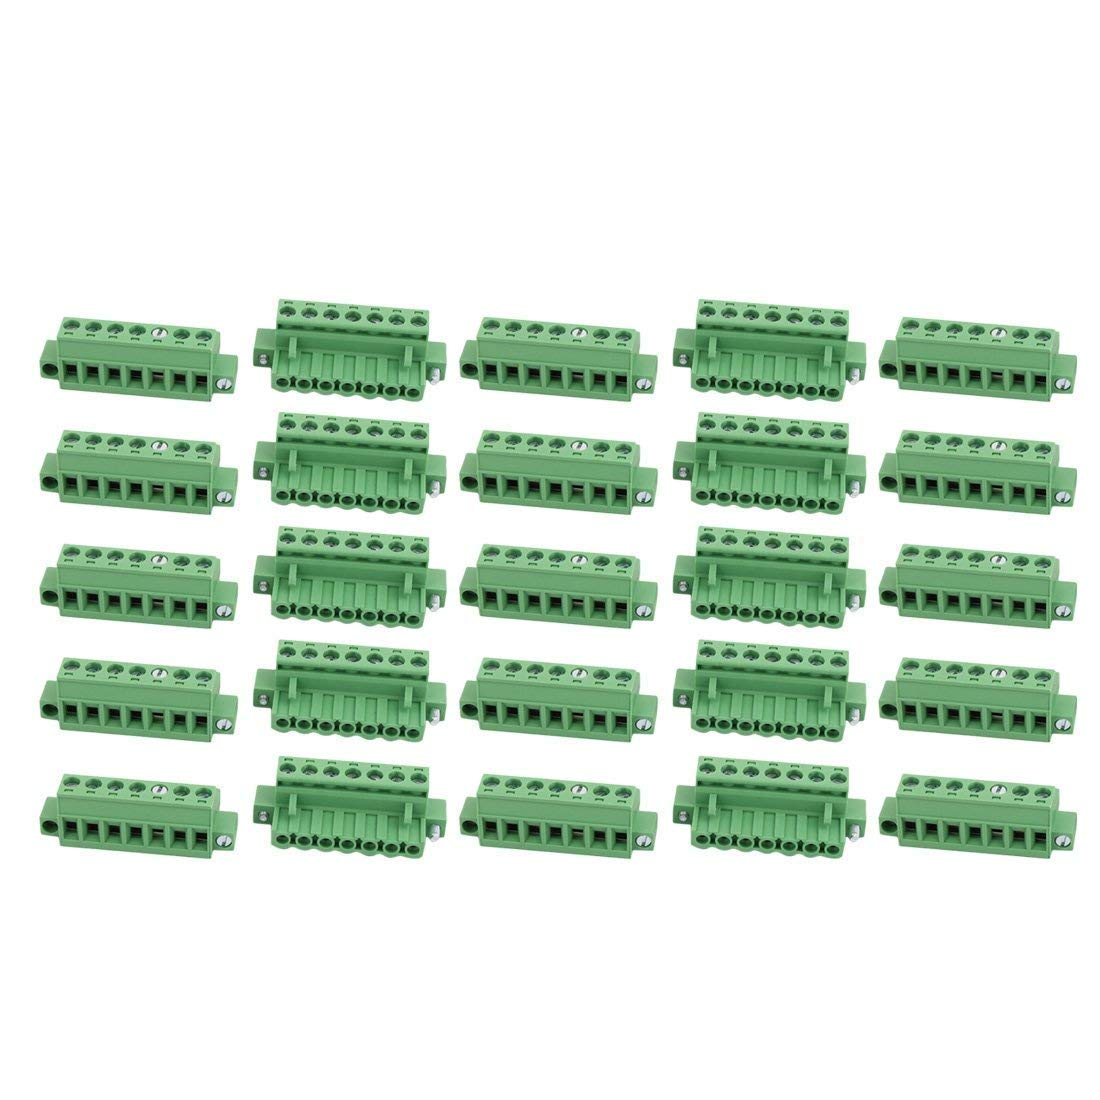 25Pcs AC 300V 15A 5.08mm Pitch 7P Terminal Block Wire Connection for PCB Mounting